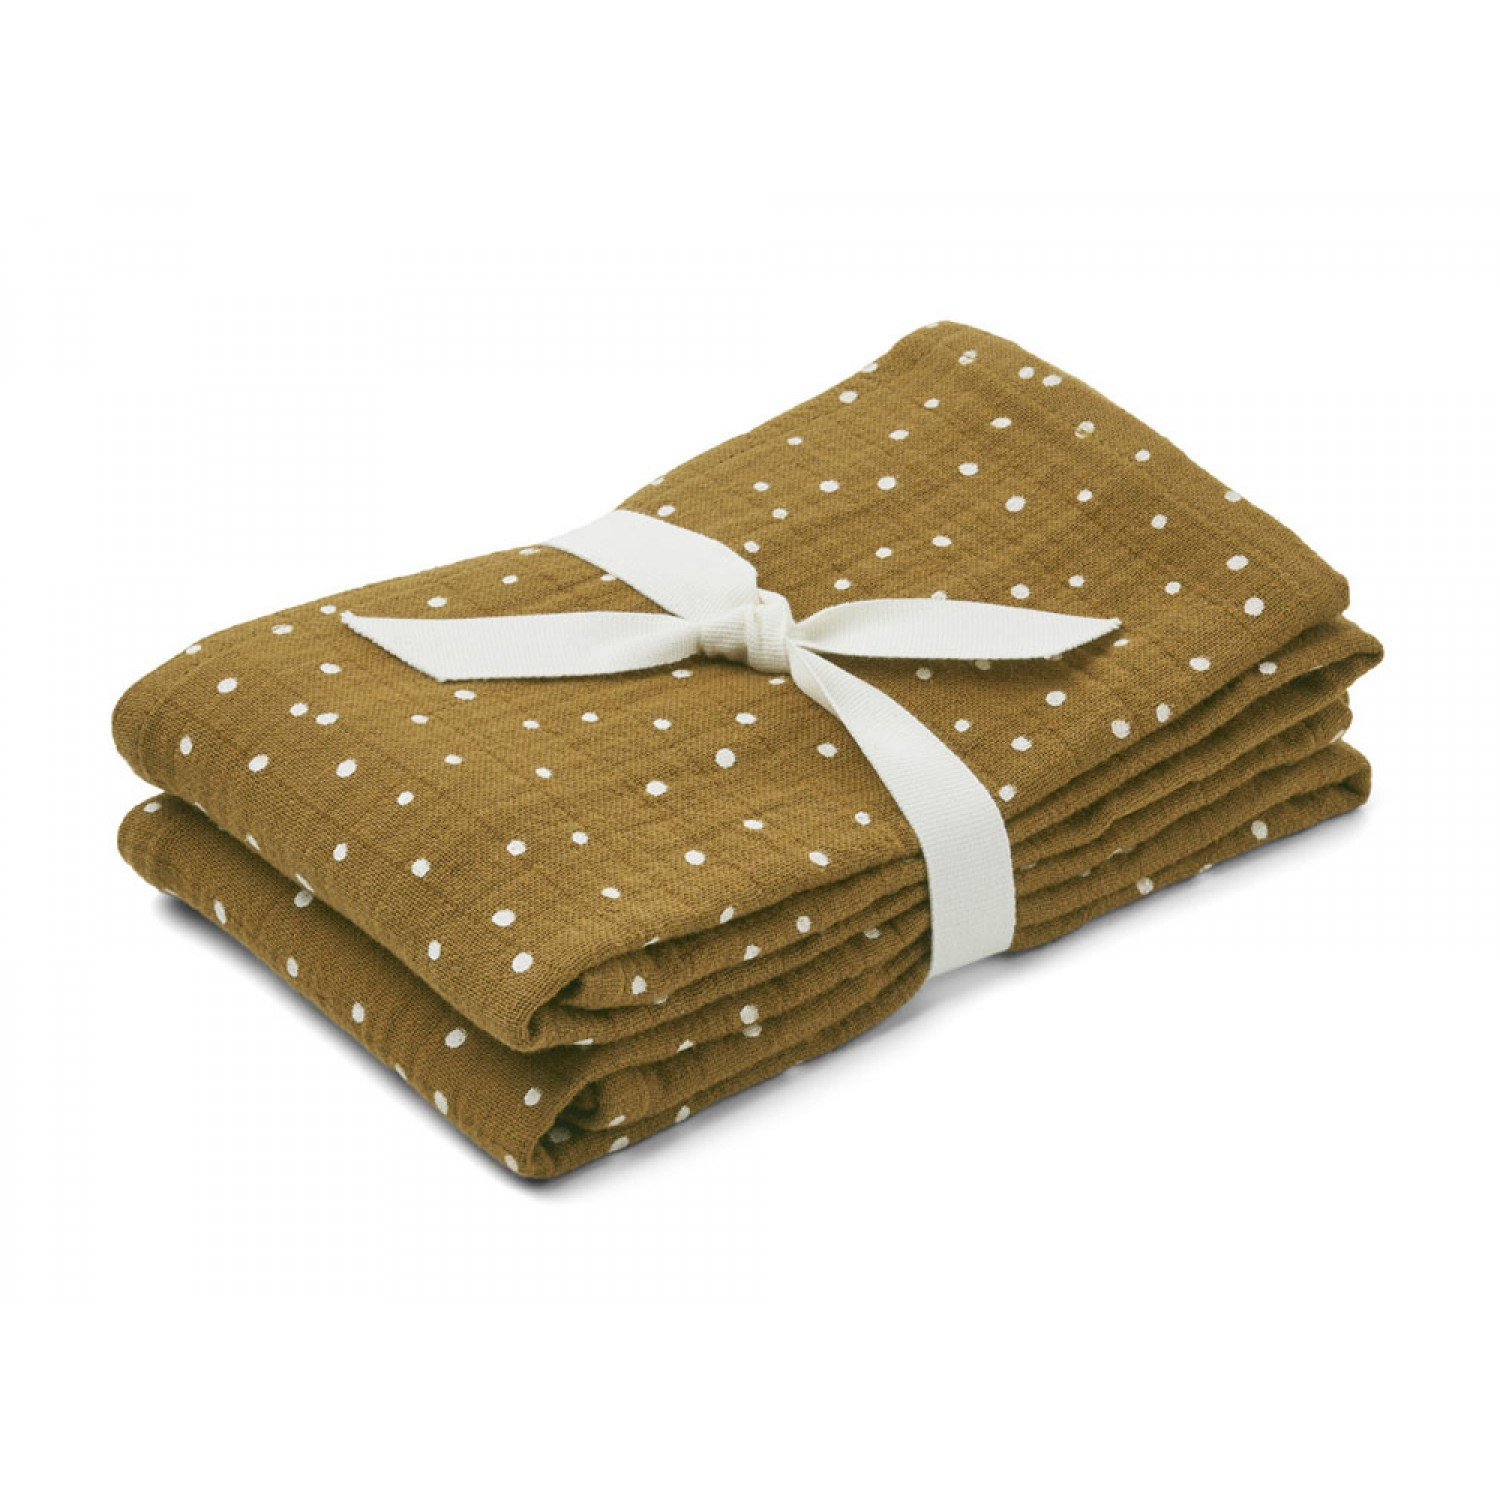 Lewis Muslin Cloth 2 Pack | Confetti olive